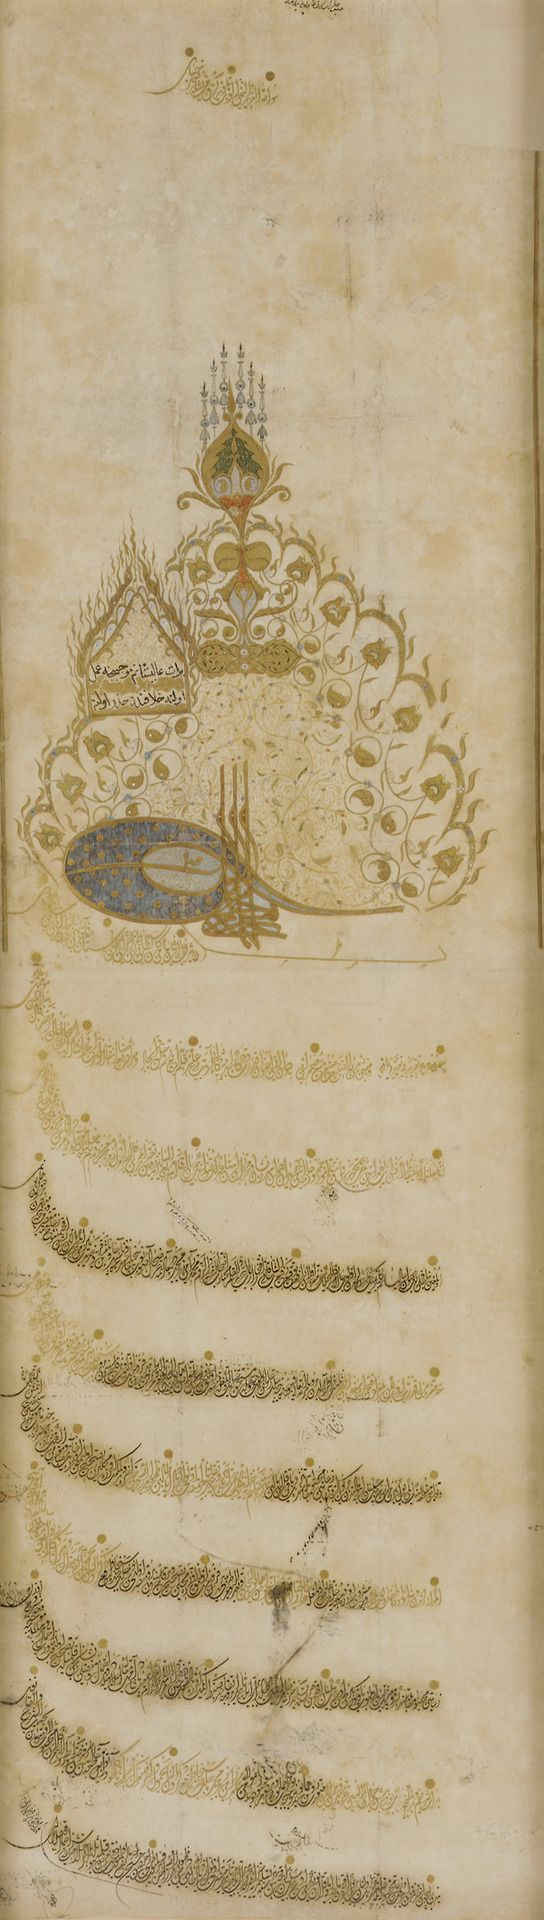 Imperial edict of the Ottoman Sultan Ahmed II, 1694.